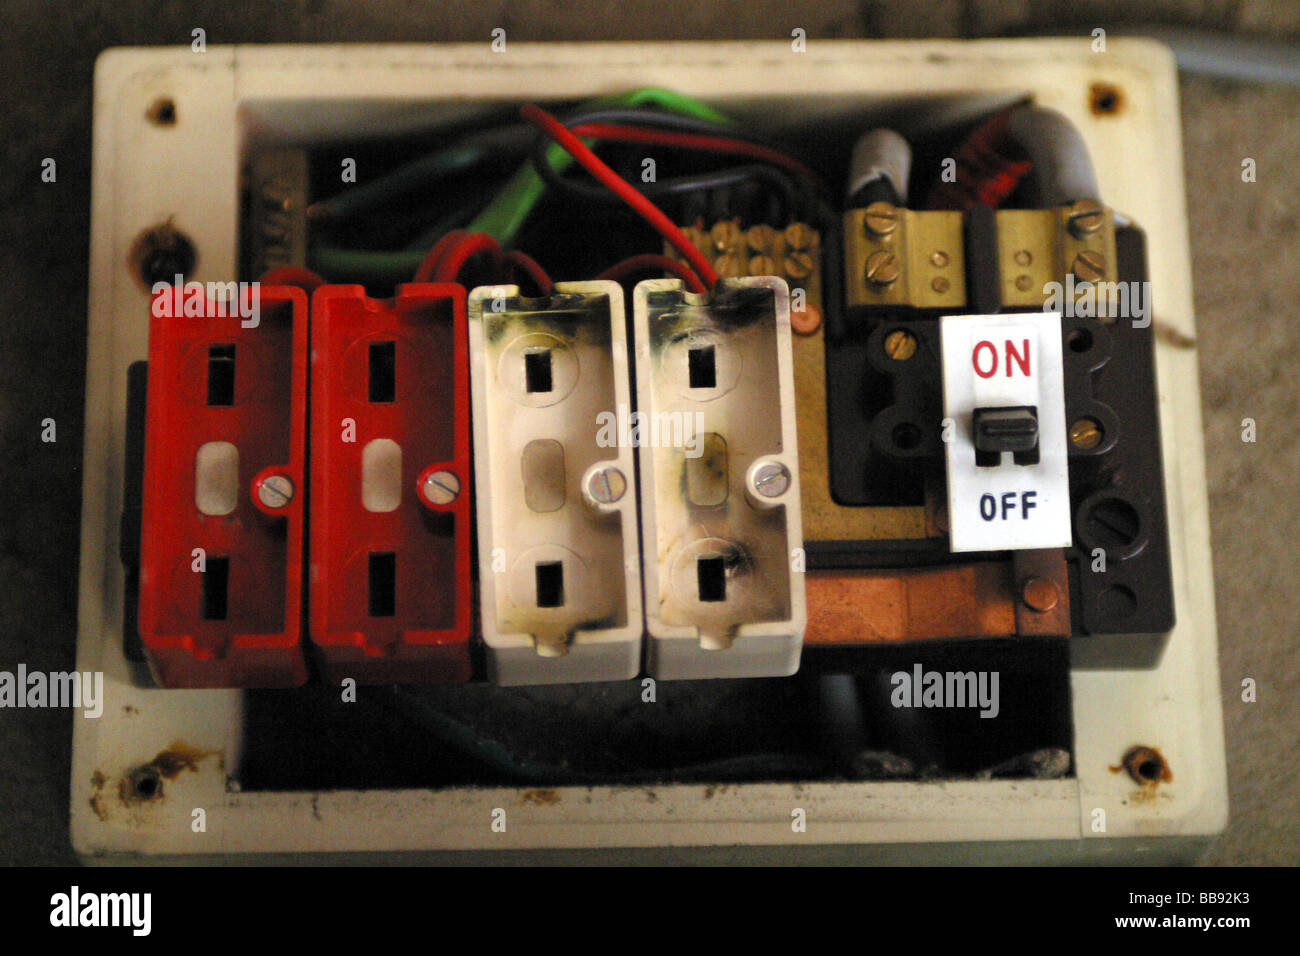 old style wire fuse box with no fuses installed stock photo rh alamy com fuse box wire connectors fuse box wire clamps